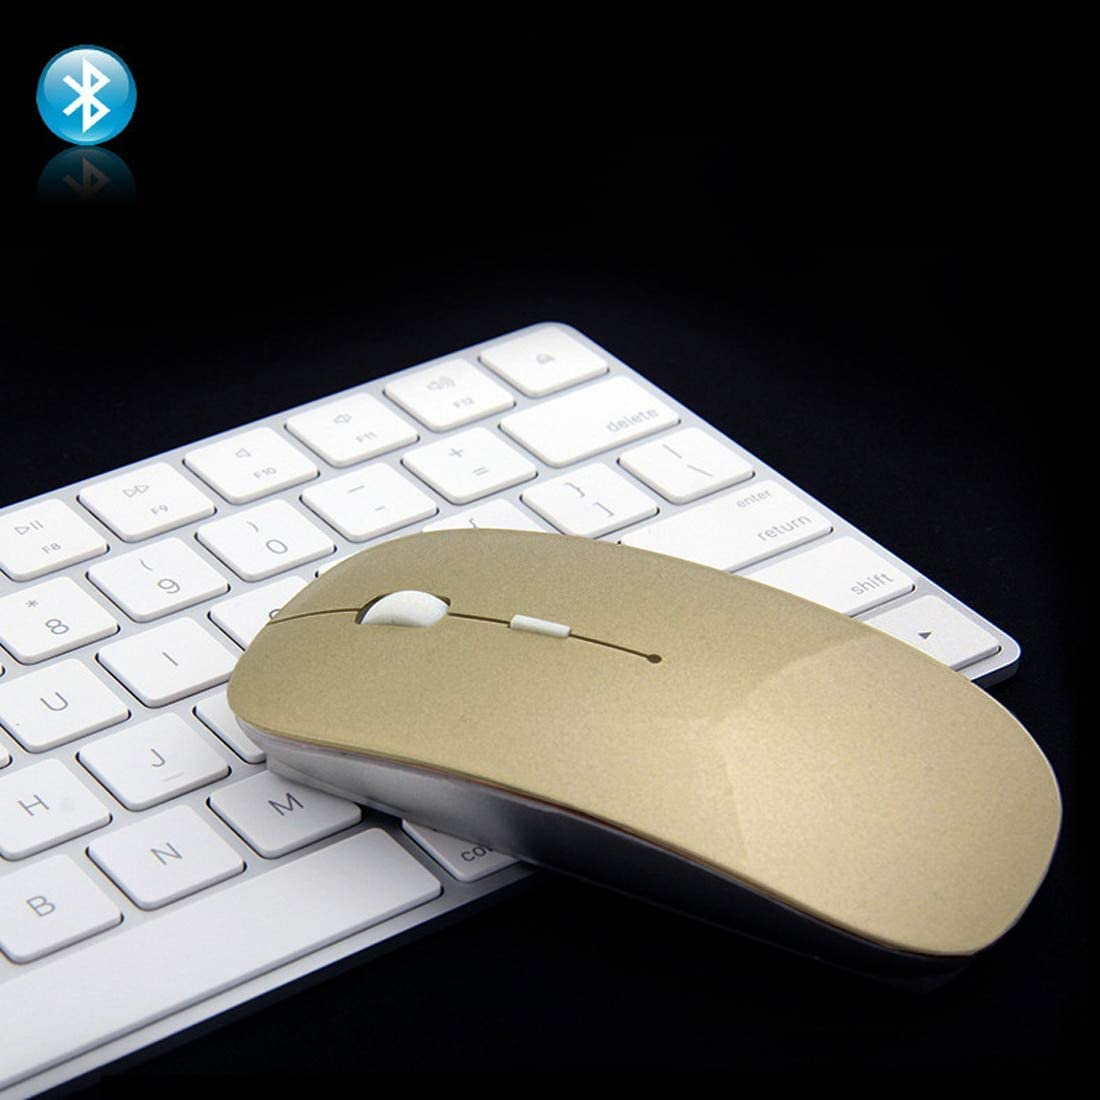 New Arrival 2.4Ghz Bluetooth 4.0 Dual Mode Wireless Mouse 1600 DPI Ultra-thin Ergonomic Portable Optical Mice Kavas